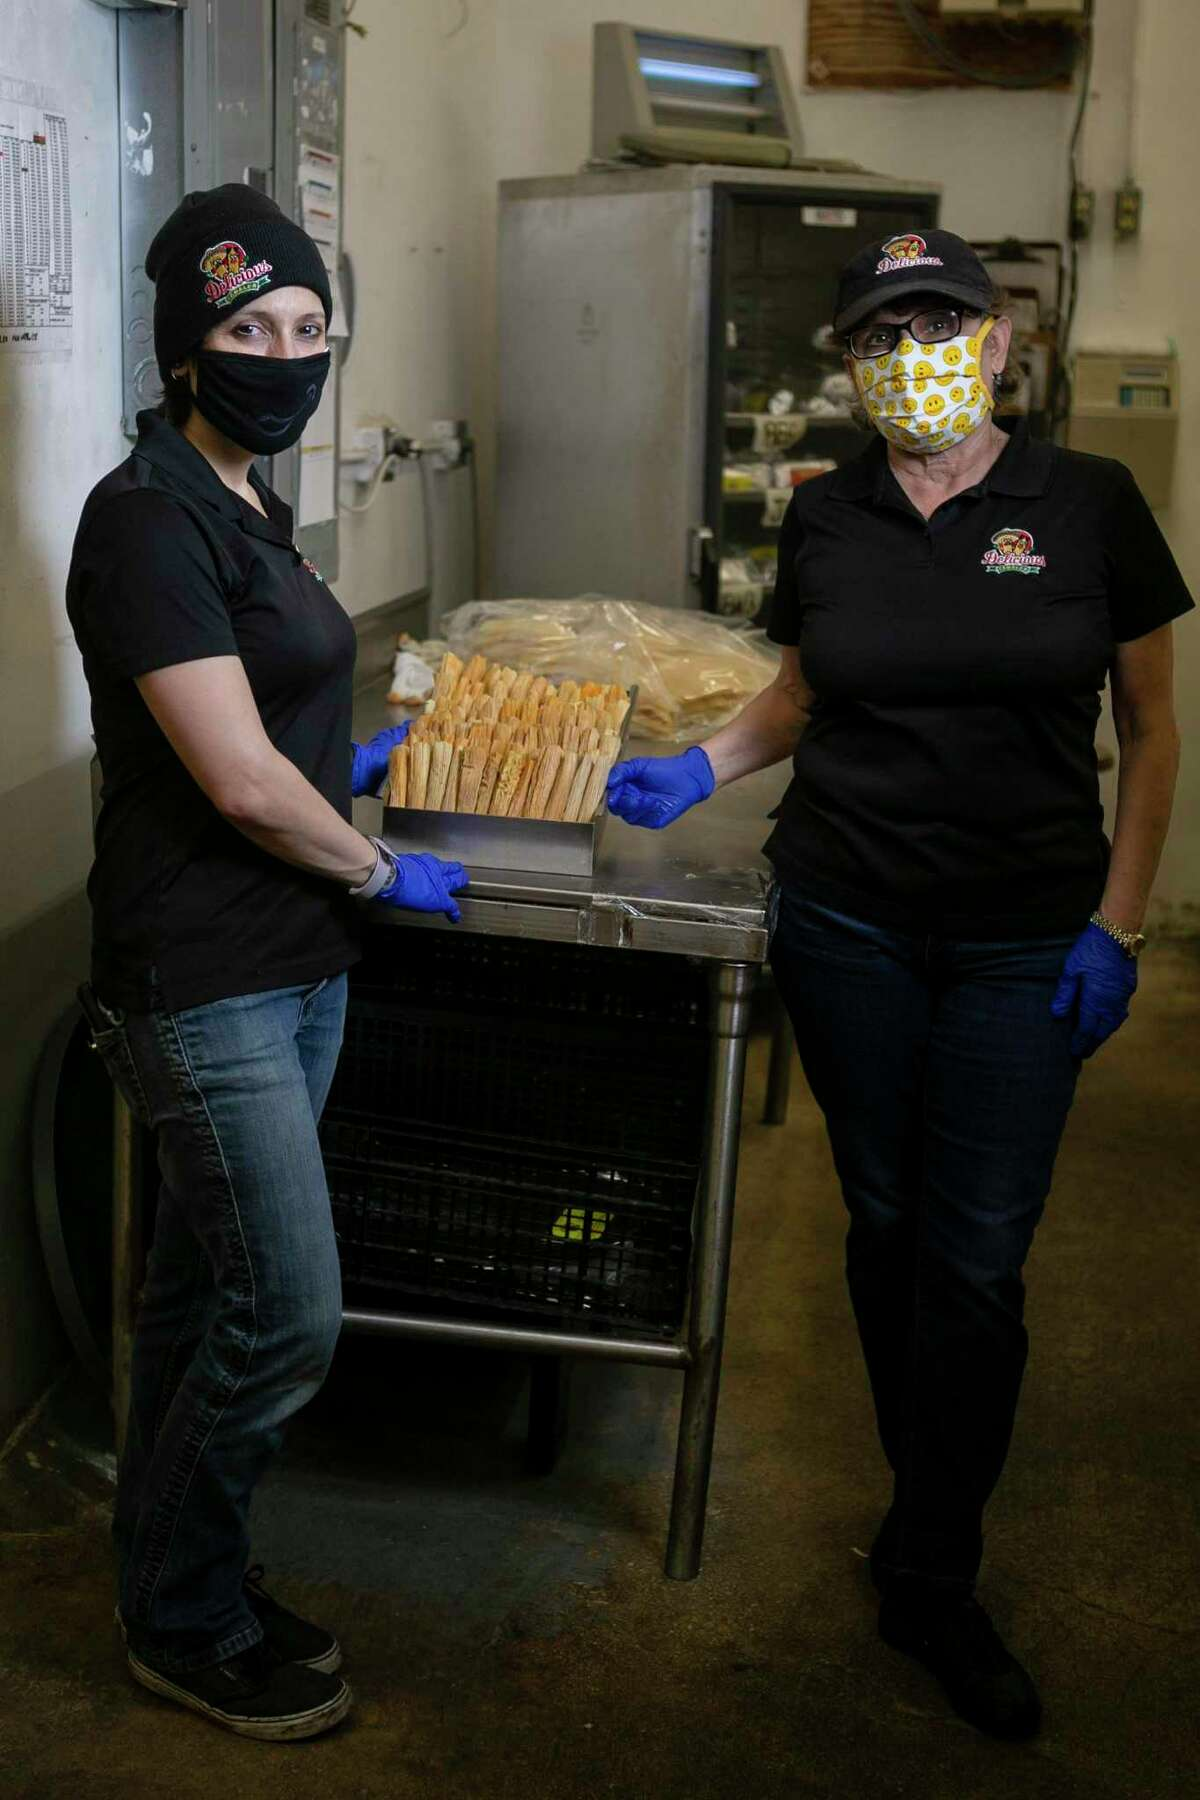 Herlinda Lopez-Wood, left, and Valerie Gonzalez-Handly, right, at Delicious Tamales' Culebra Road location in San Antonio. The business obtained a $232,000 loan through the Bank of San Antonio as part of the Paycheck Protection Program.